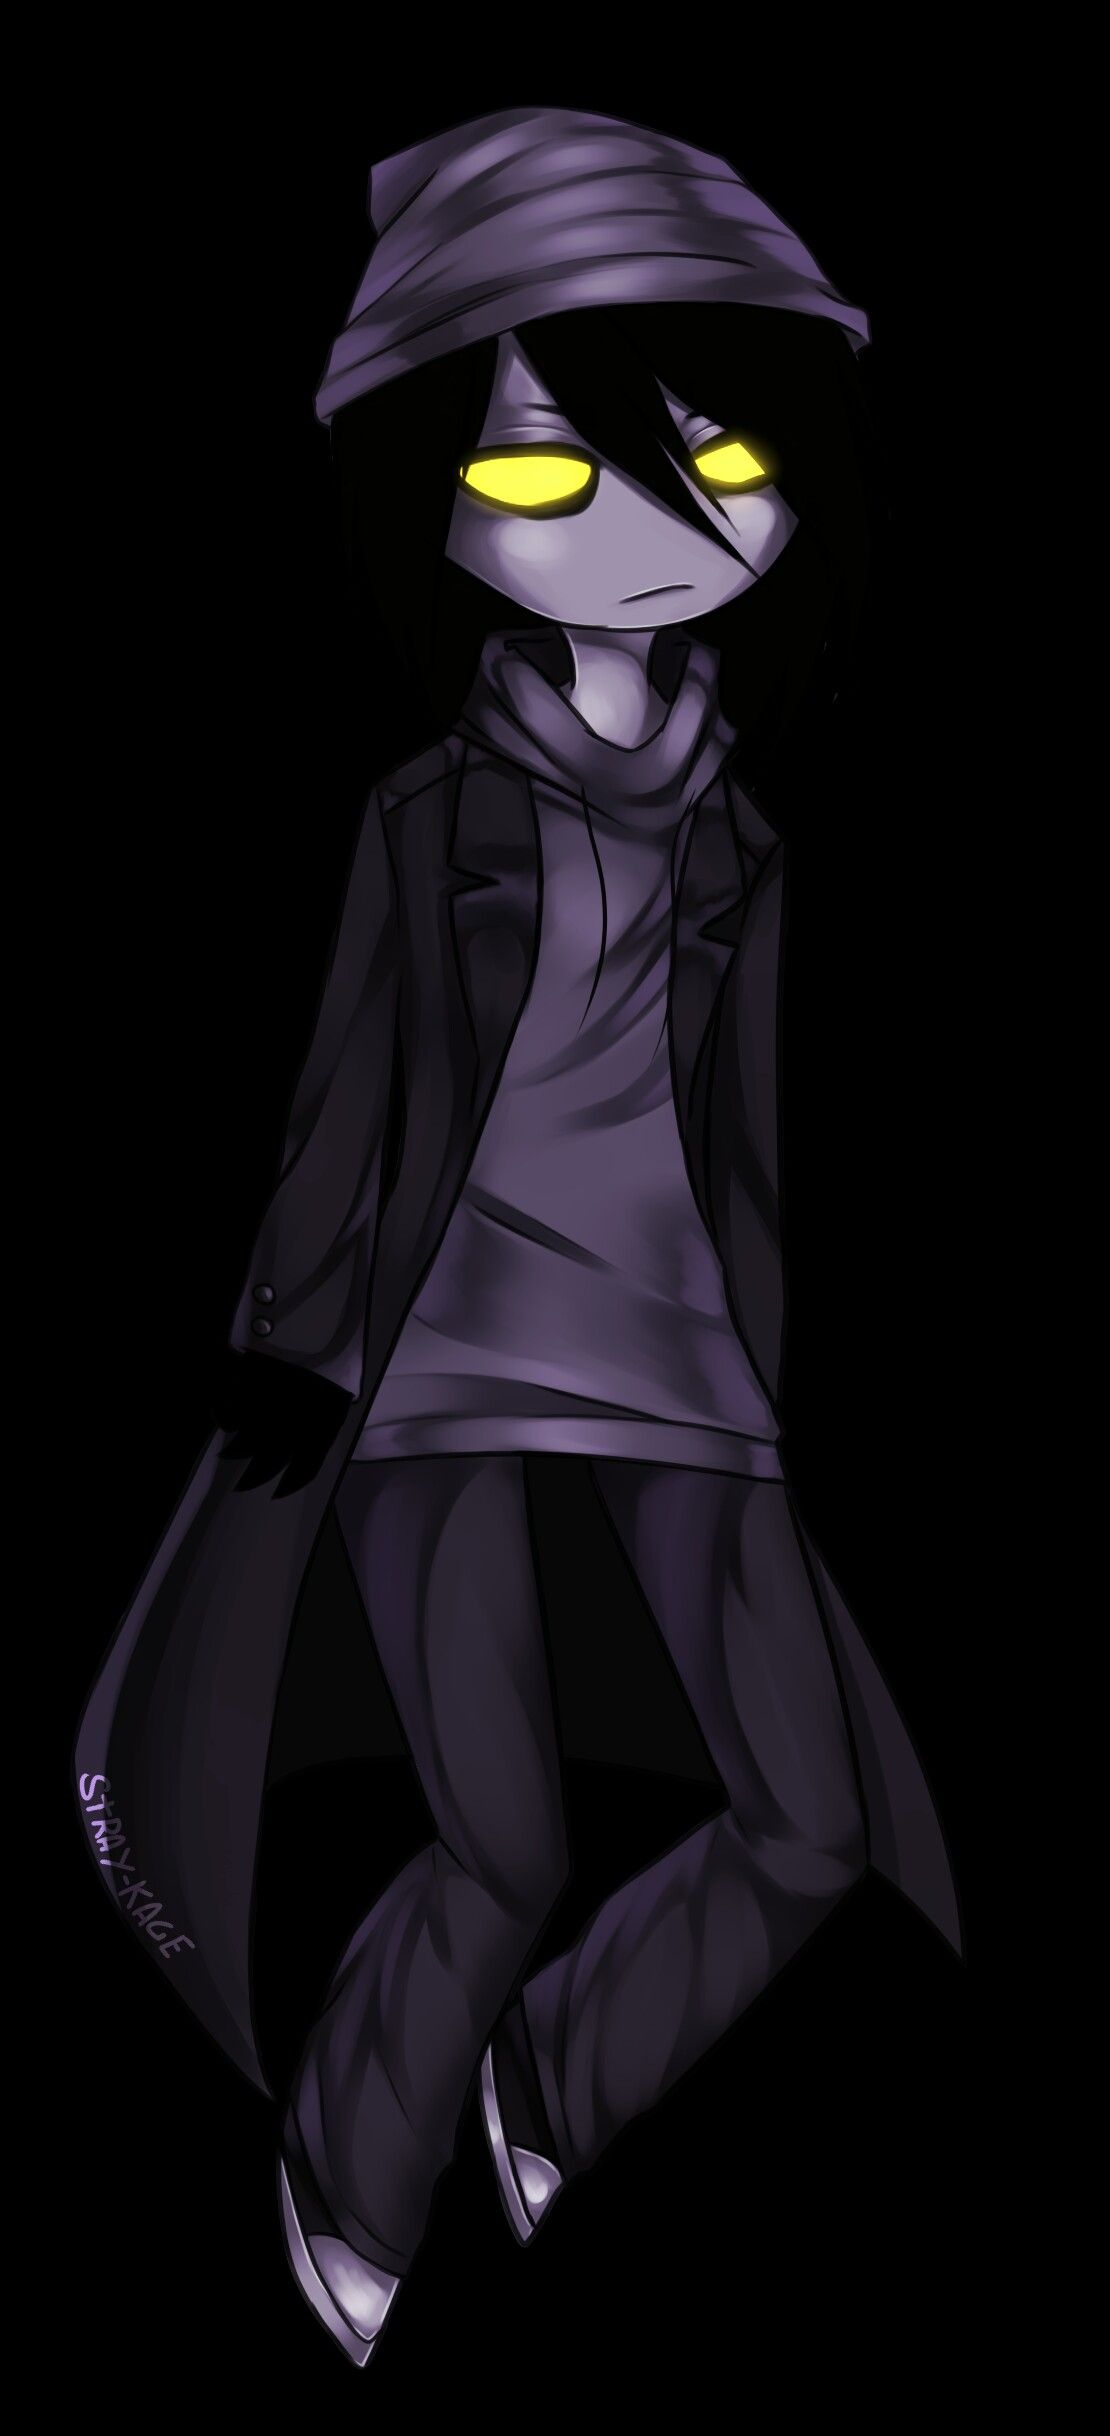 The Puppeteer by Stray-Kage on deviantart | Yes yes and one thousand